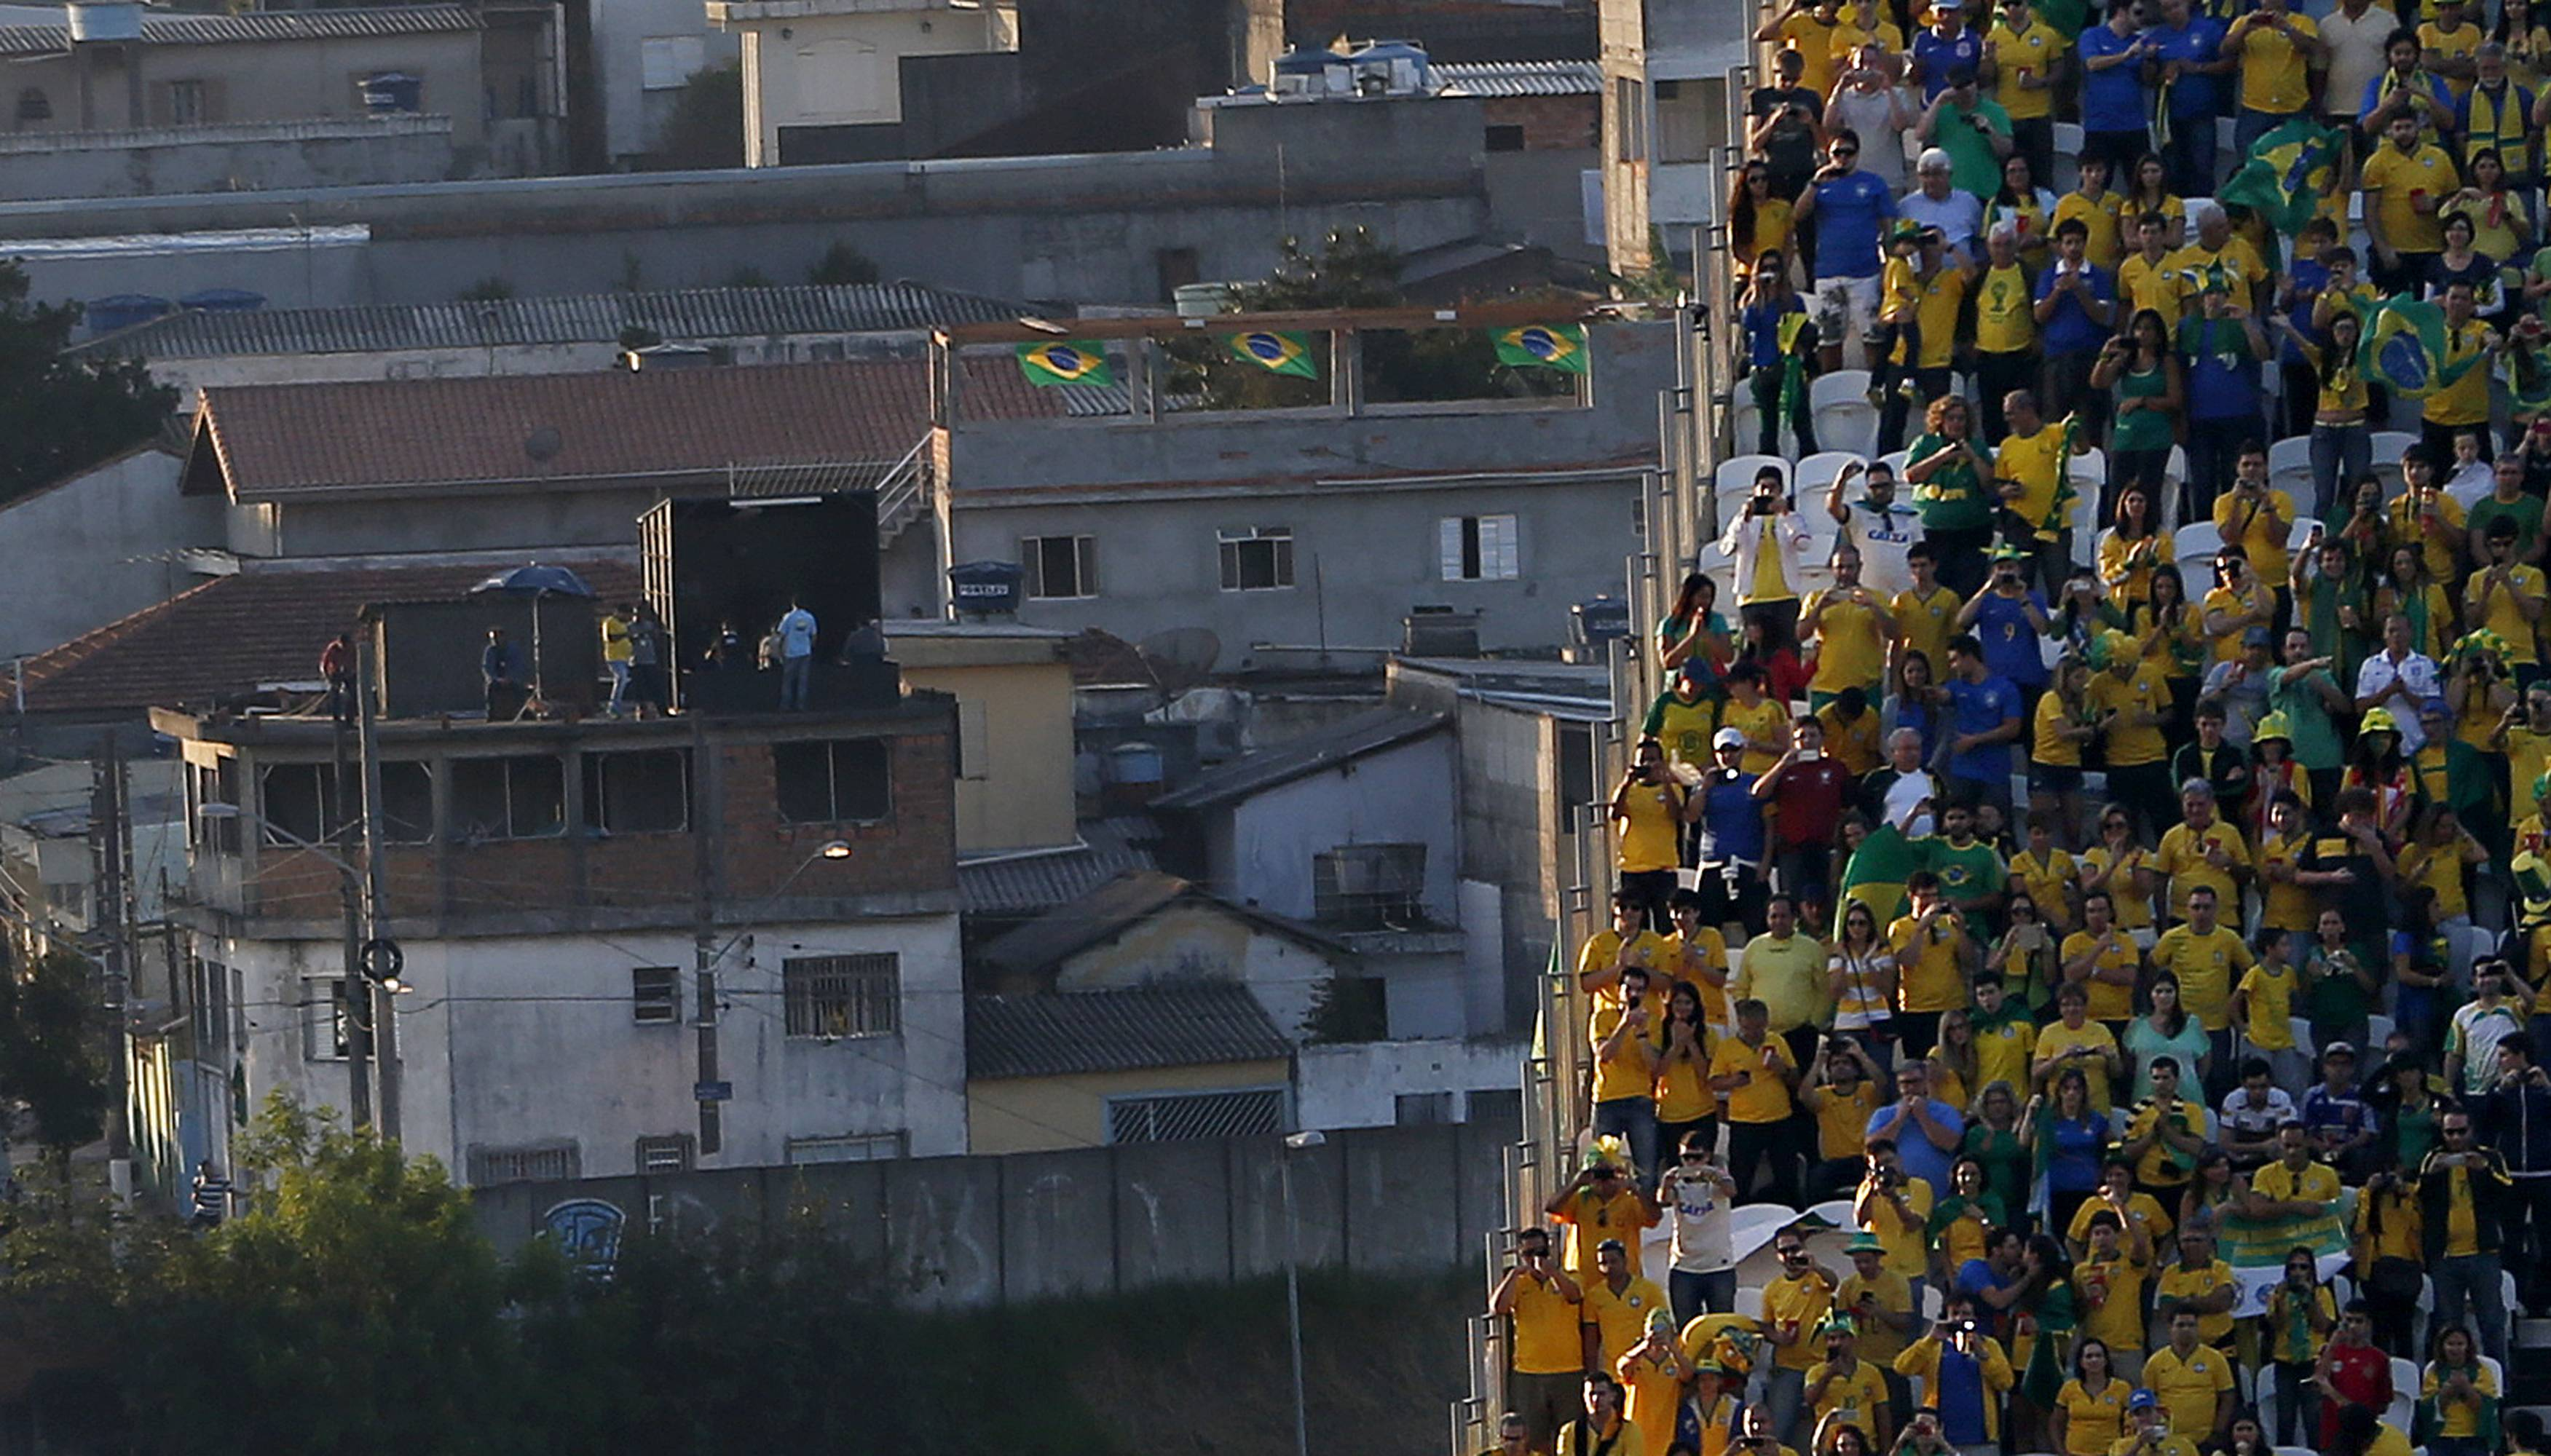 Sao Paulo residents hang out on the roof of a building, left, in a neighborhood adjacent to Itaquerao Stadium, where fans gathered on the stands before the start of the World Cup opening match between Brazil and Croatia in group A in Sao Paulo, Brazil, Thursday, June 12, 2014.